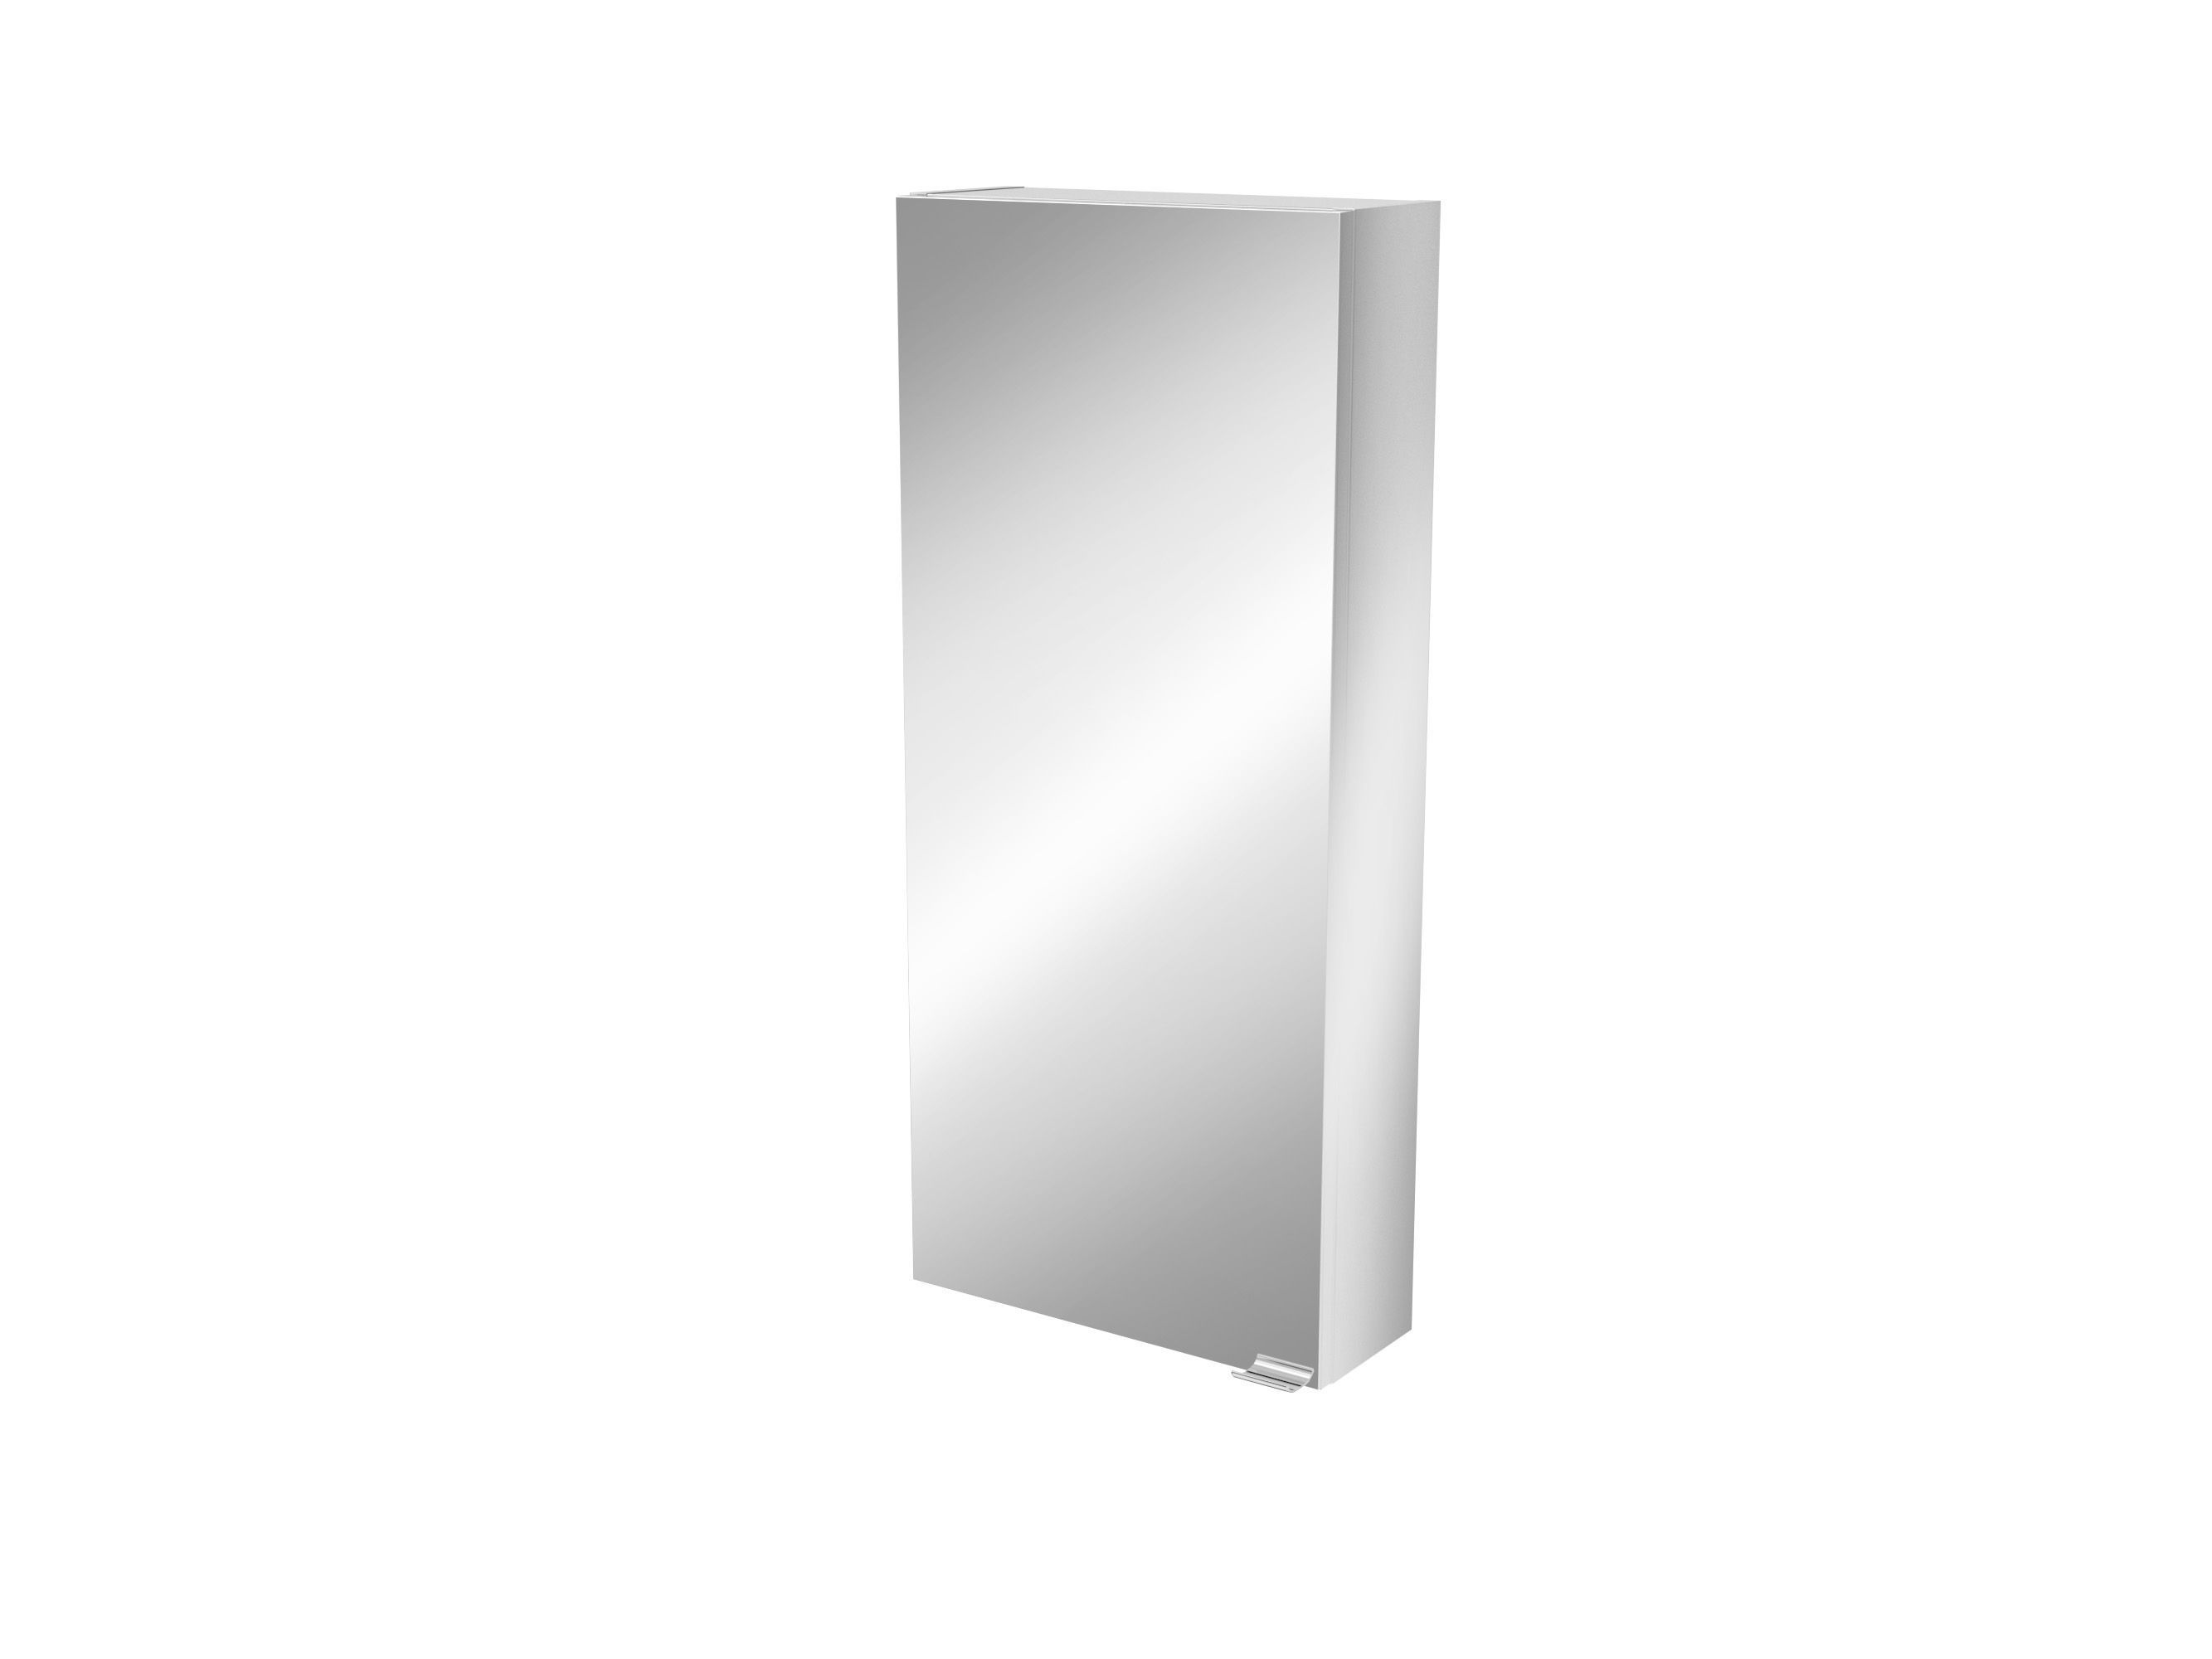 Cooke & Lewis Imandra Mirrored Wall Cabinet, (w)400mm